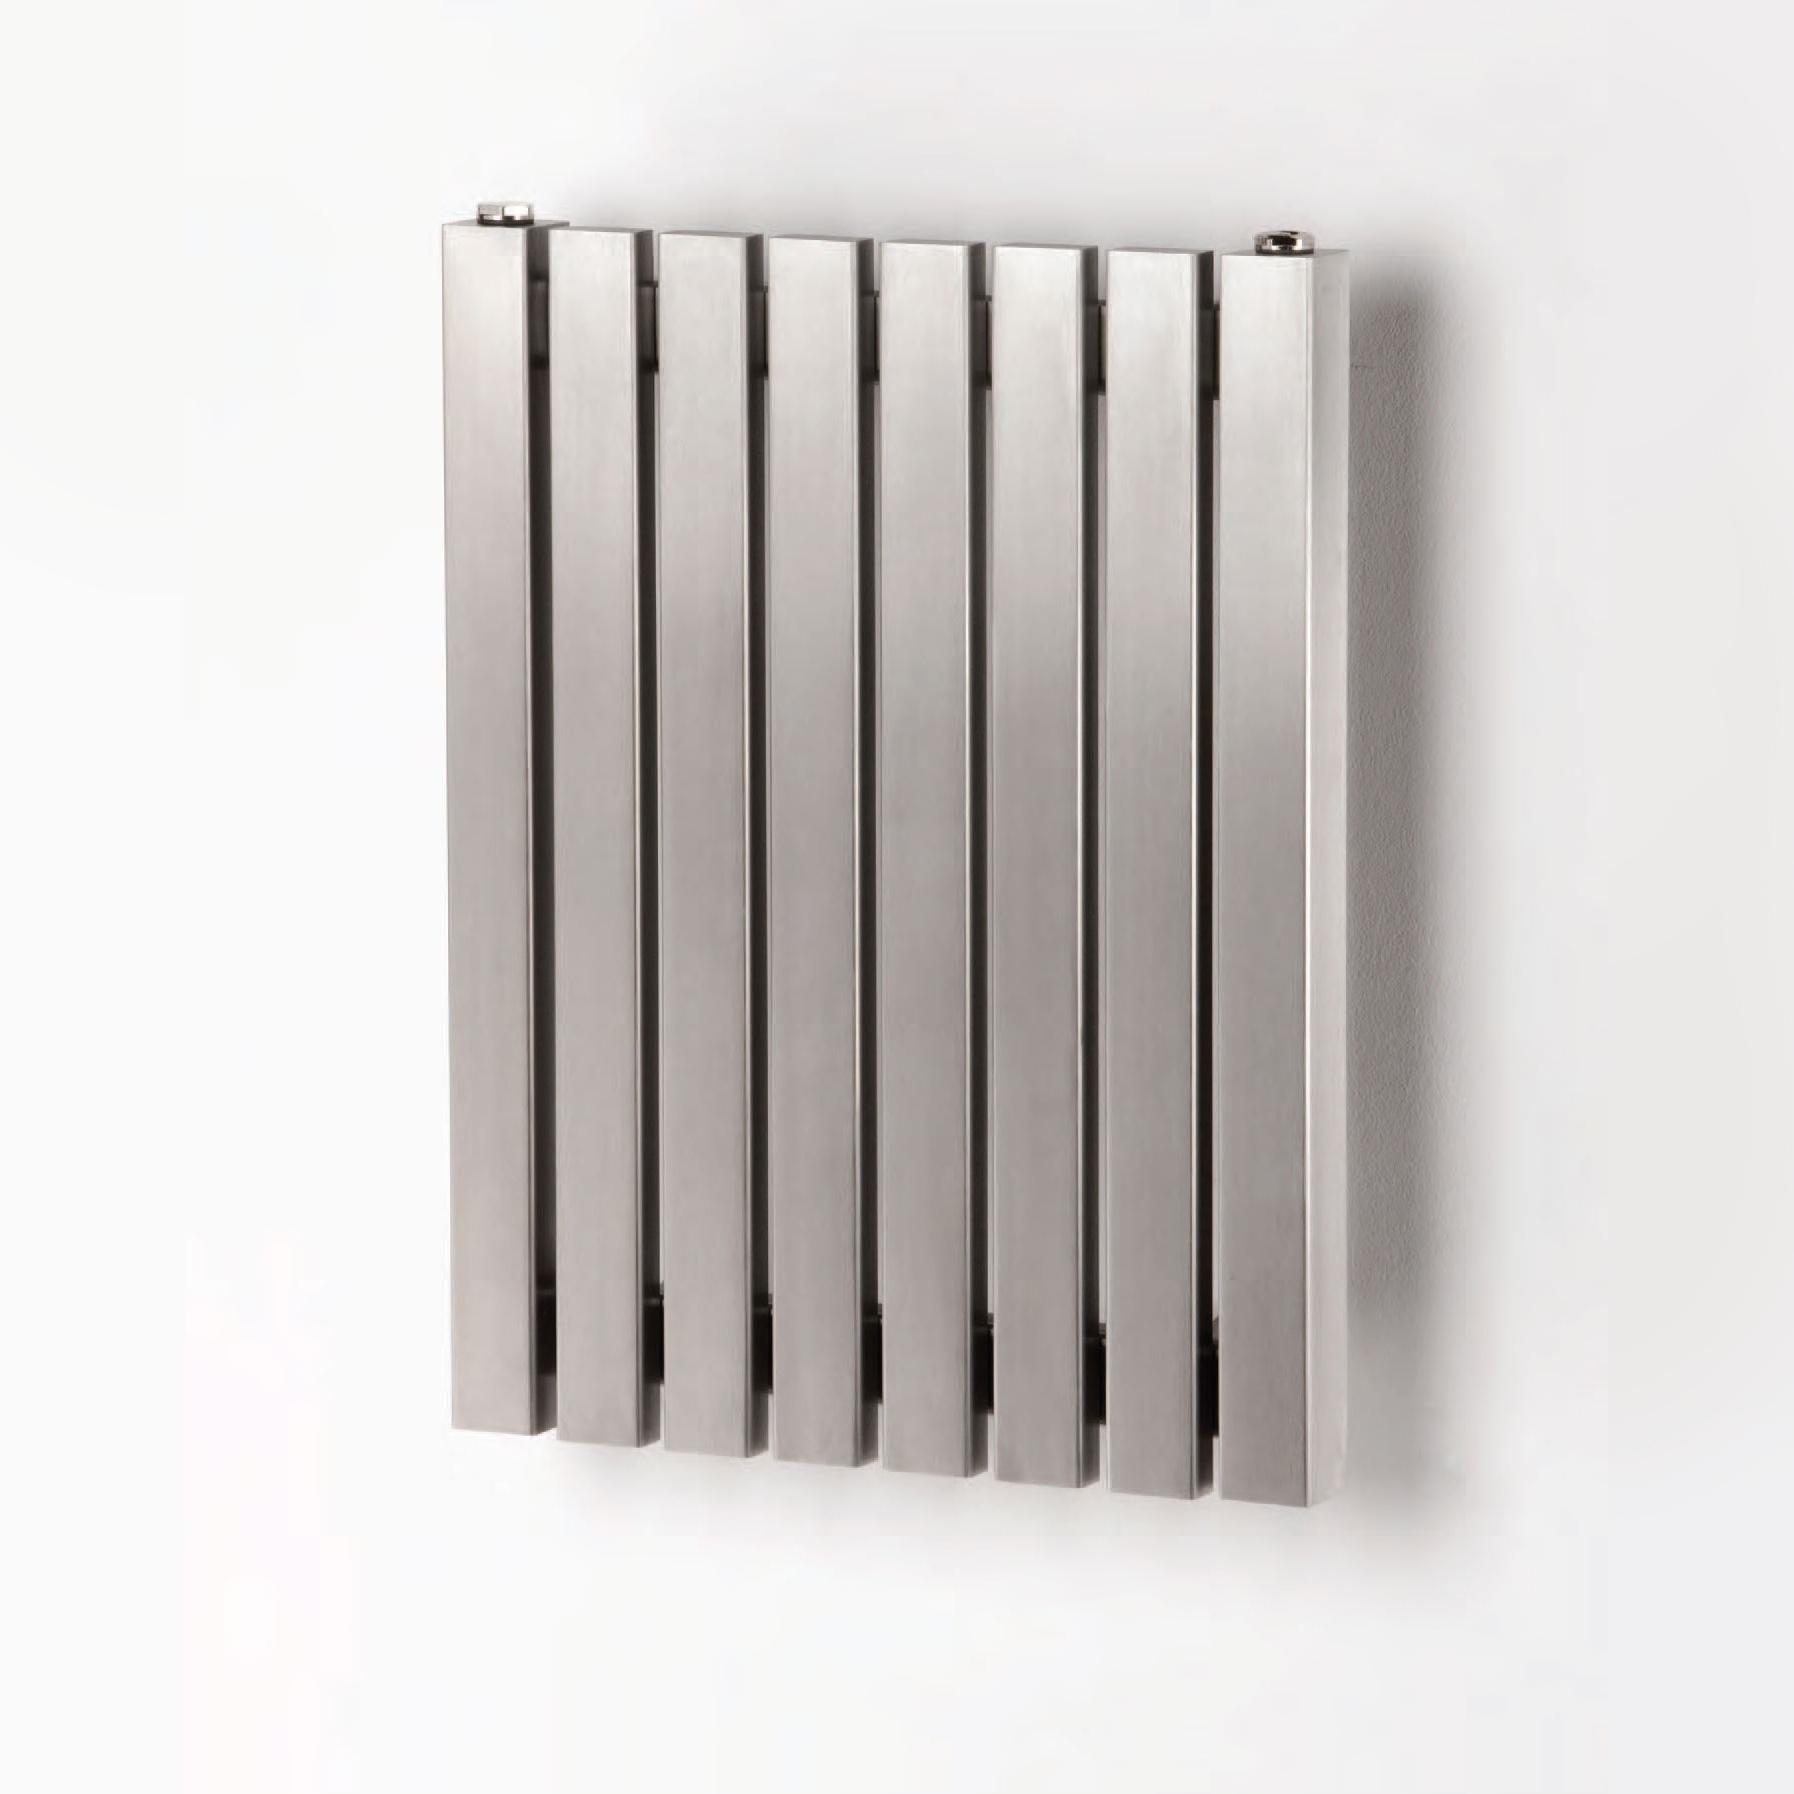 Aeon Arat Wall Mounted Brushed Stainless Steel Radiators